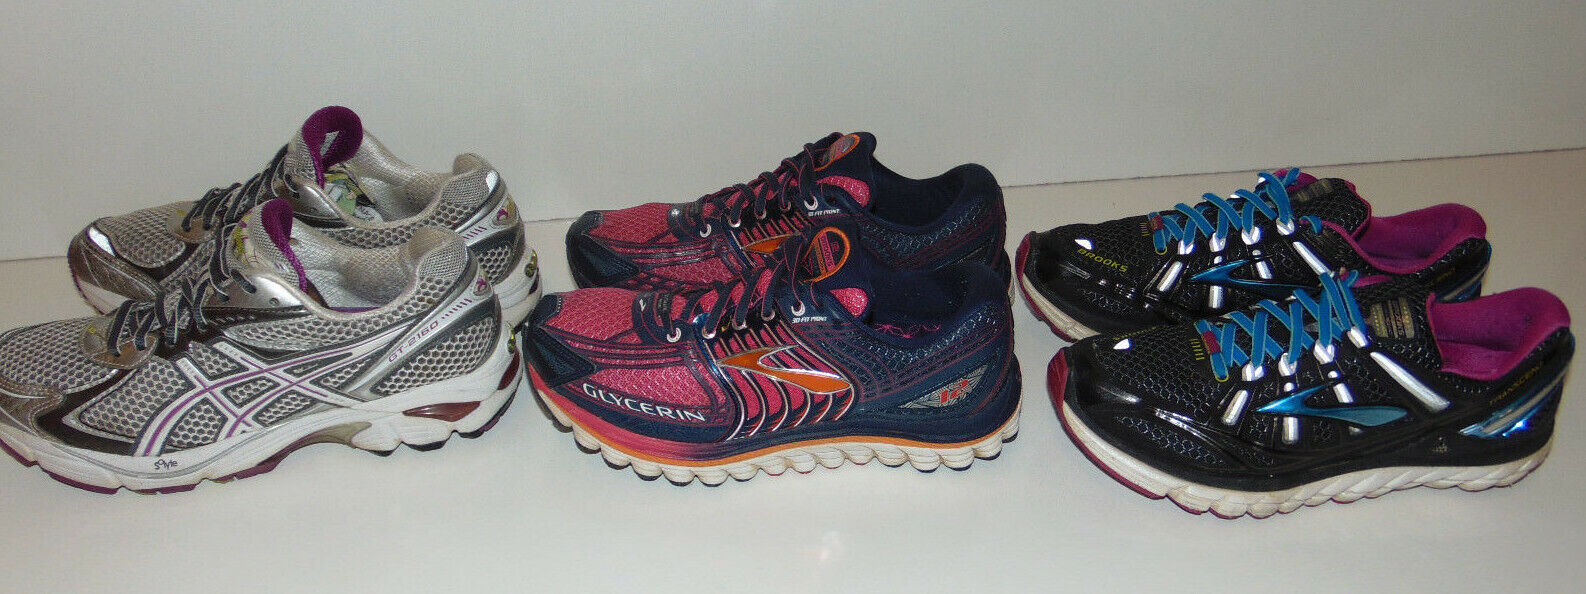 3 Brooks Glycerin 12 TRANSCEND ASICS Pink Athletic Sneakers Running shoes Sz 7.5